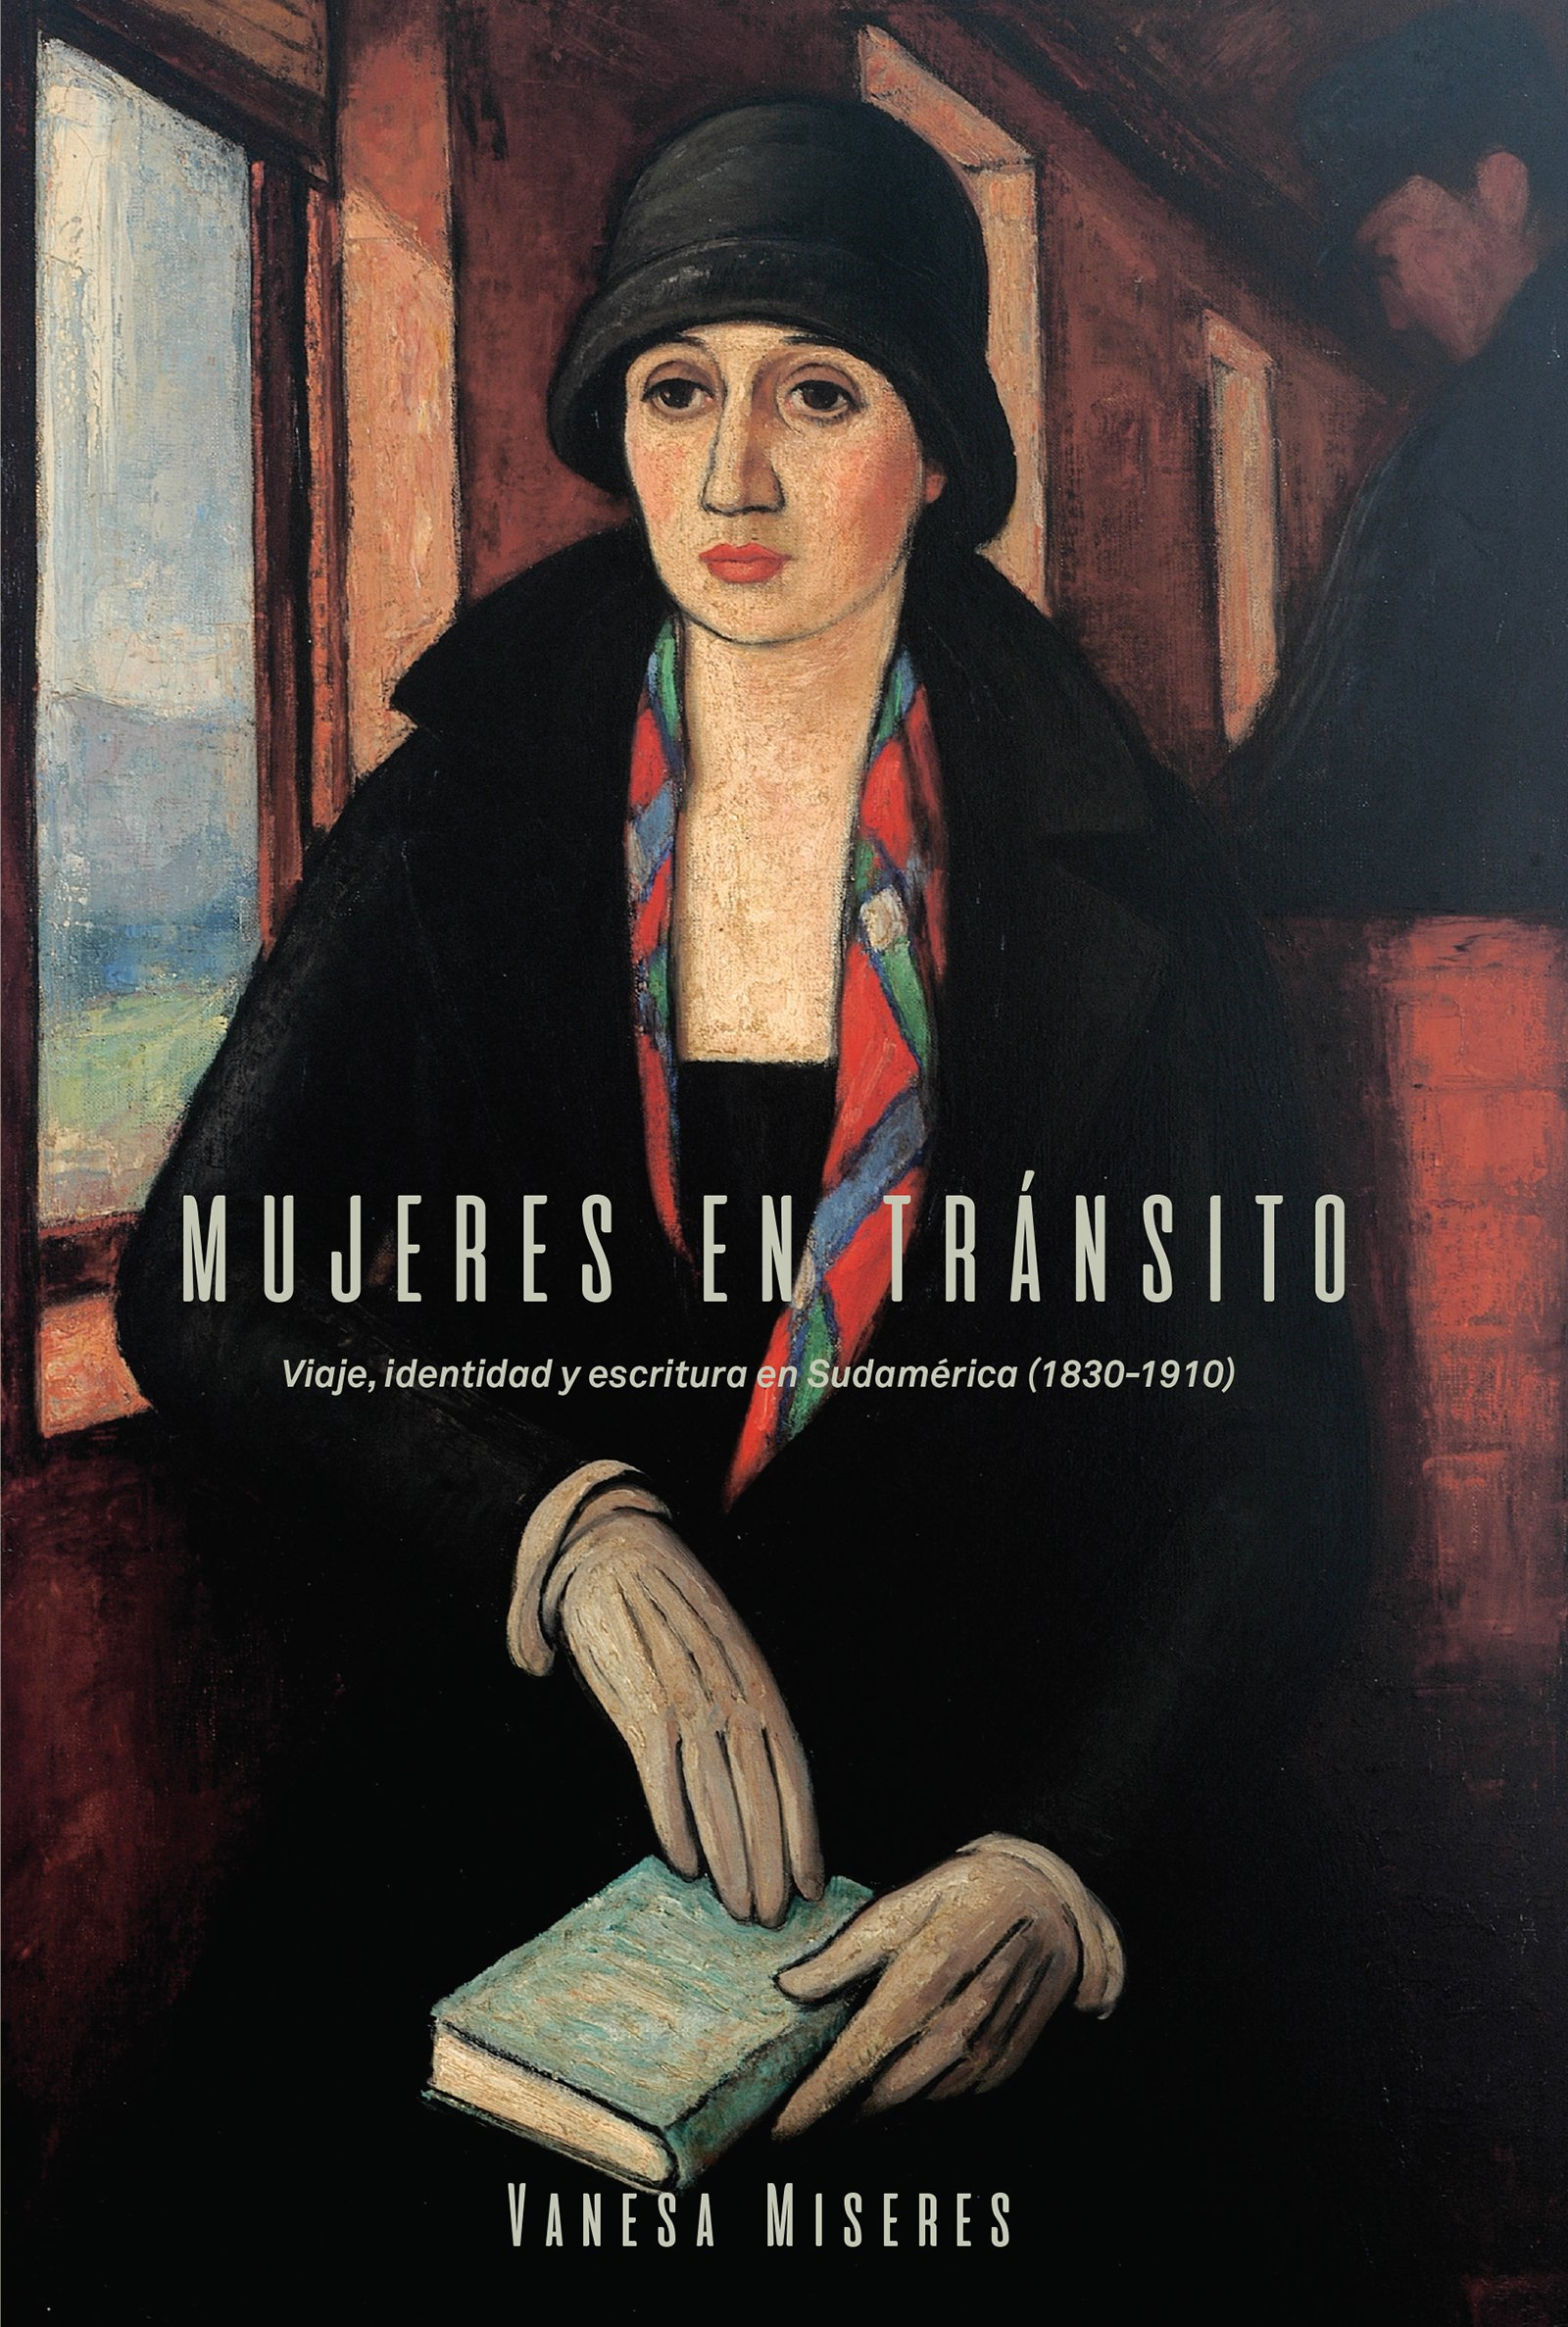 Mujeres en tránsito: Viaje, identidad y escritura en Sudamérica (1830-1910) (North Carolina Studies in the Romance Languages and Literatures) (Spanish Edition) by University of North Carolina at Chapel Hill Department of Romance Studies